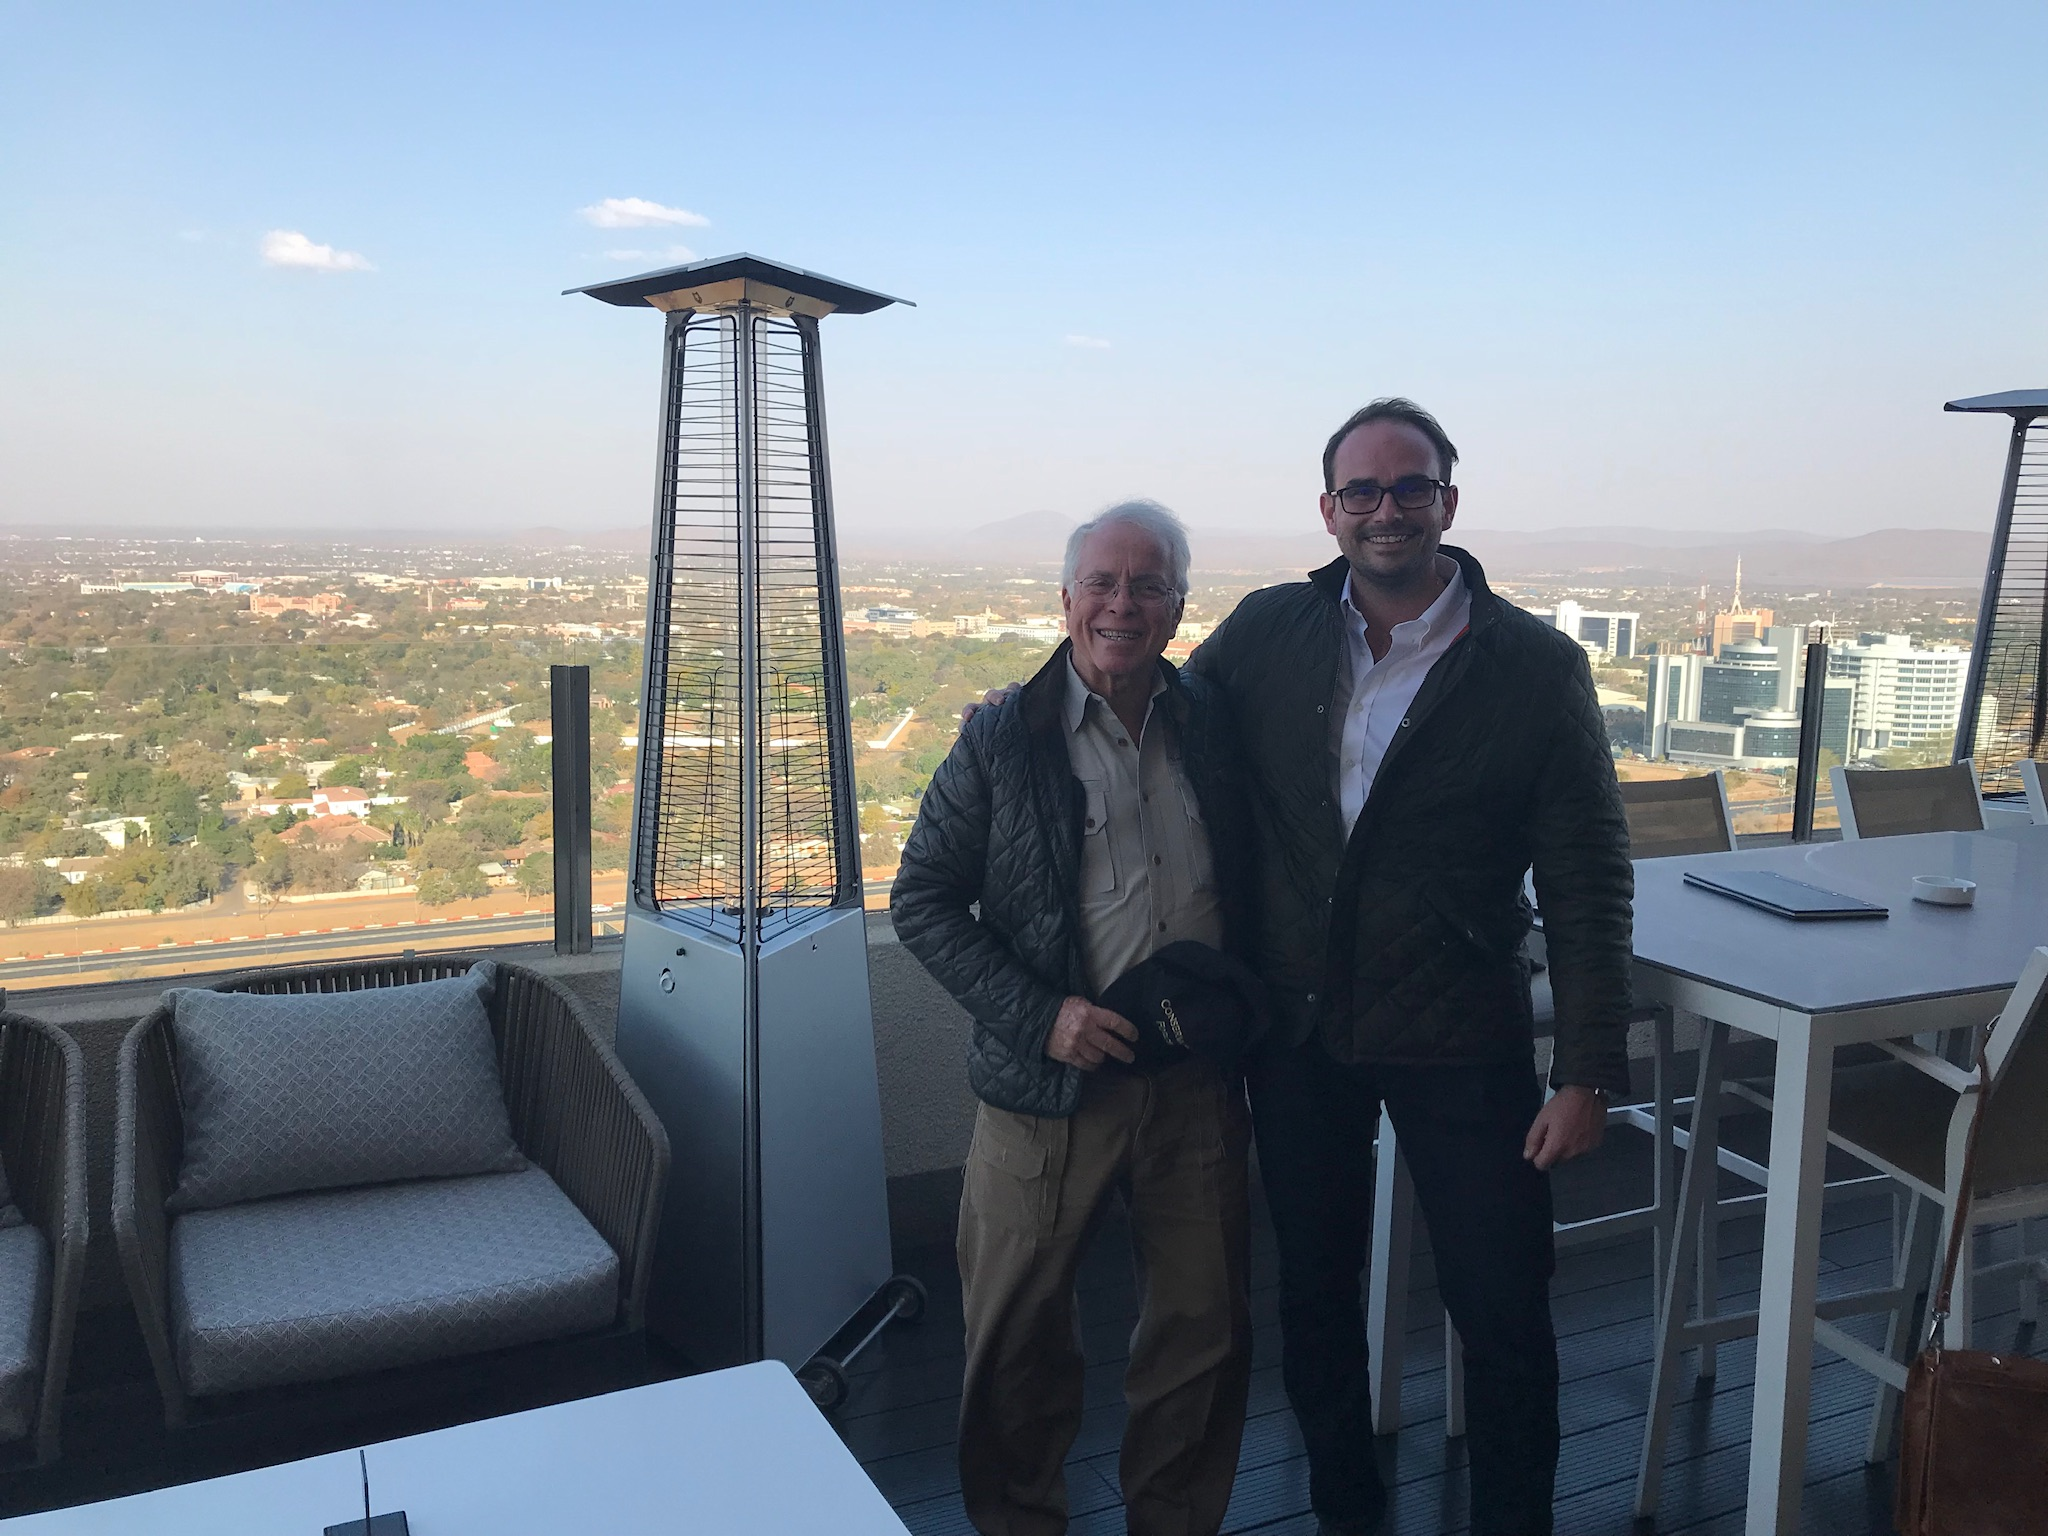 John and Matt Boguslawski in Botswana